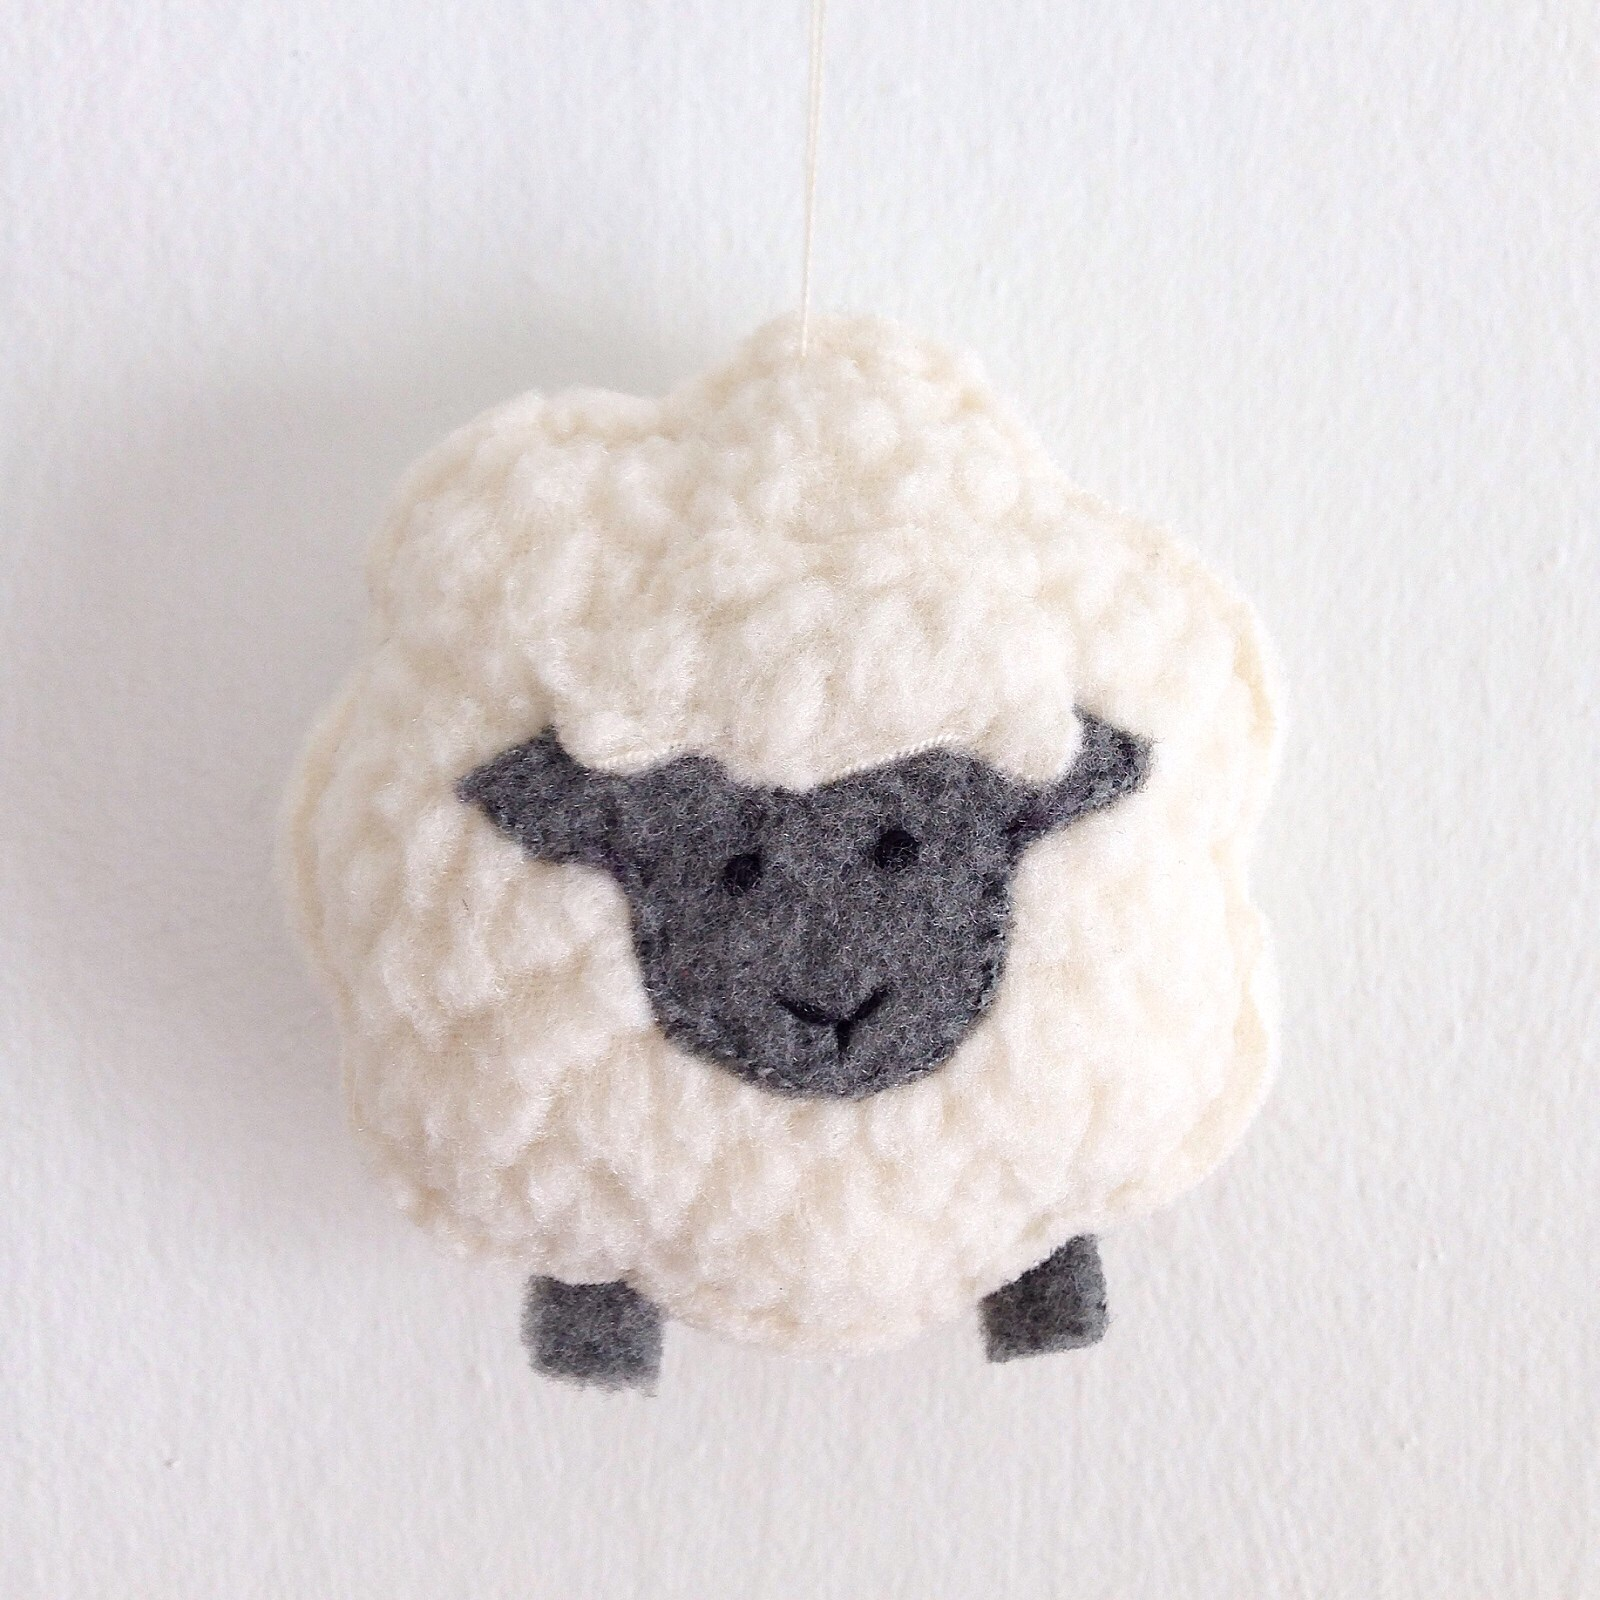 Little Sheep Sewing Pattern - Christmas Ornament - Plush Toy